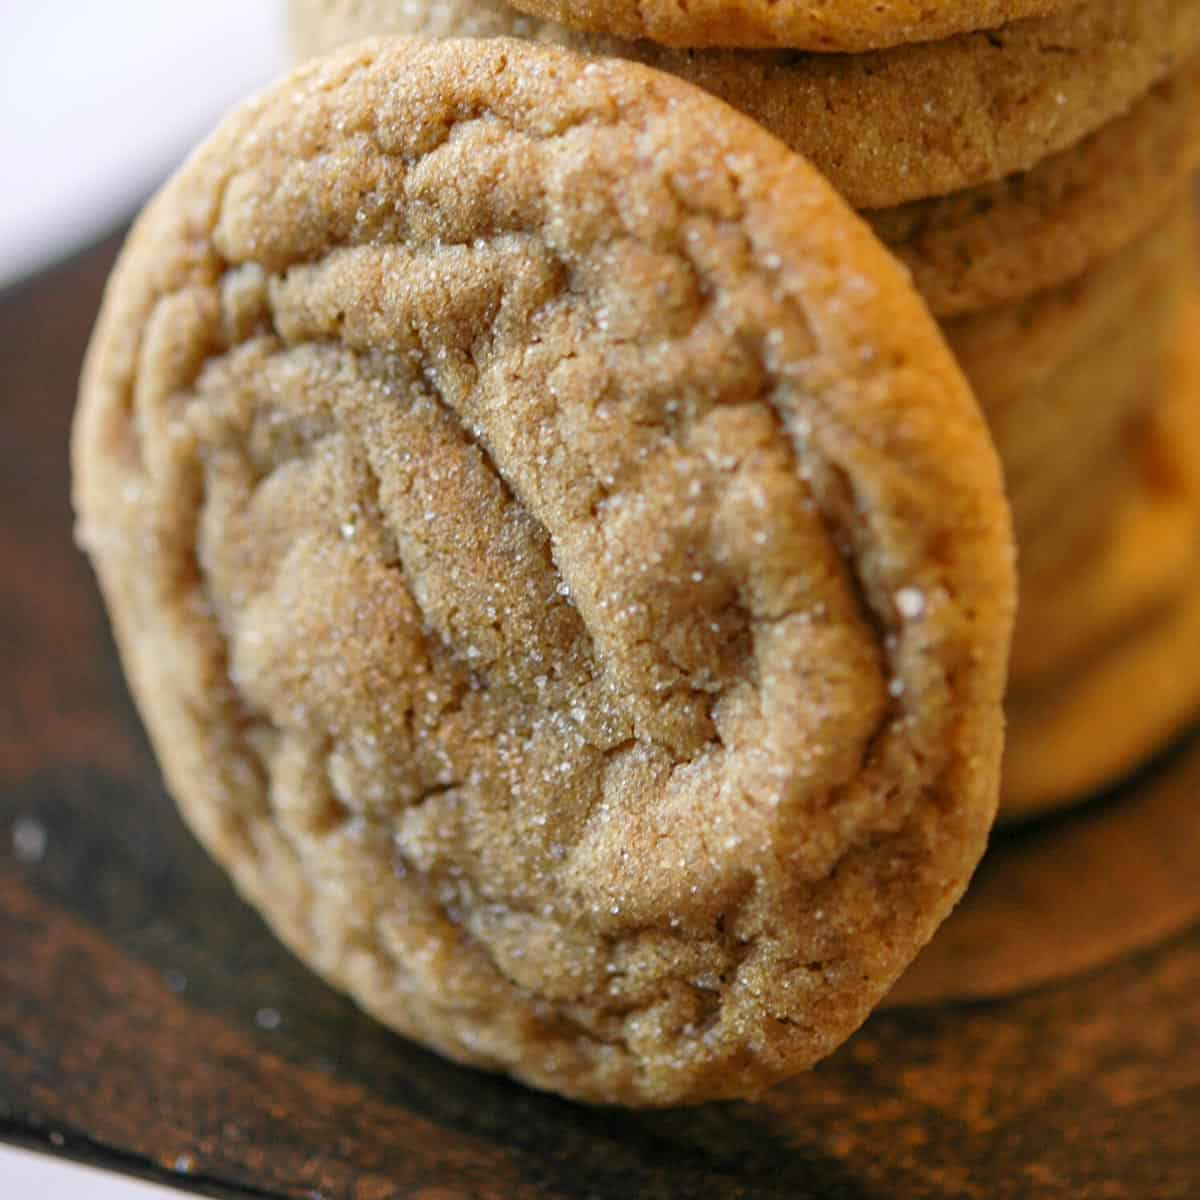 So good ginger cookie leaning against a stack of cookies, you can see the sugar baked onto the cookie.